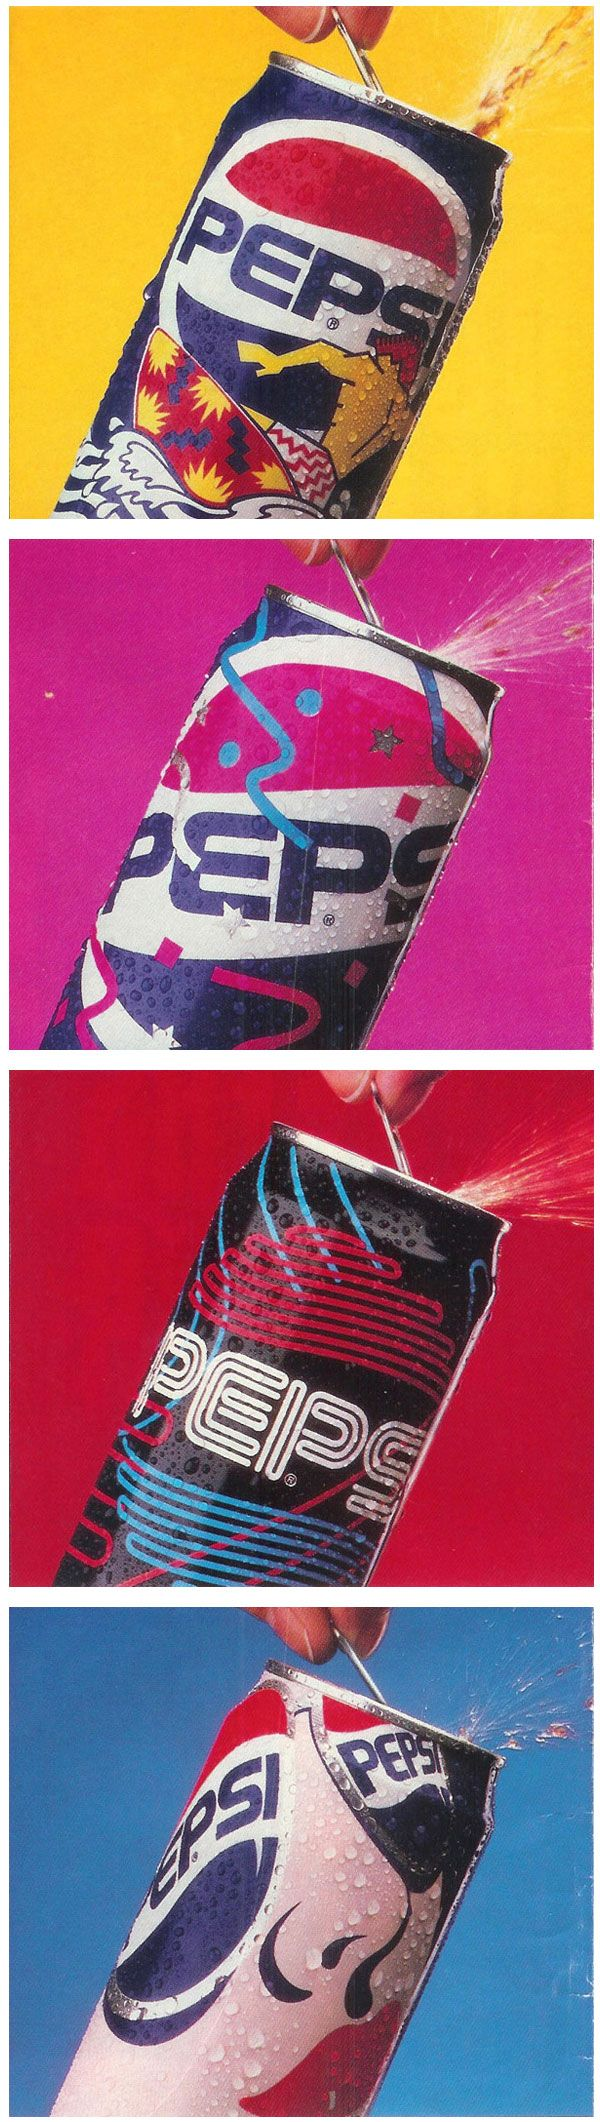 Pepsi Cool Cans which Pepsi marketed back in the 90s PD